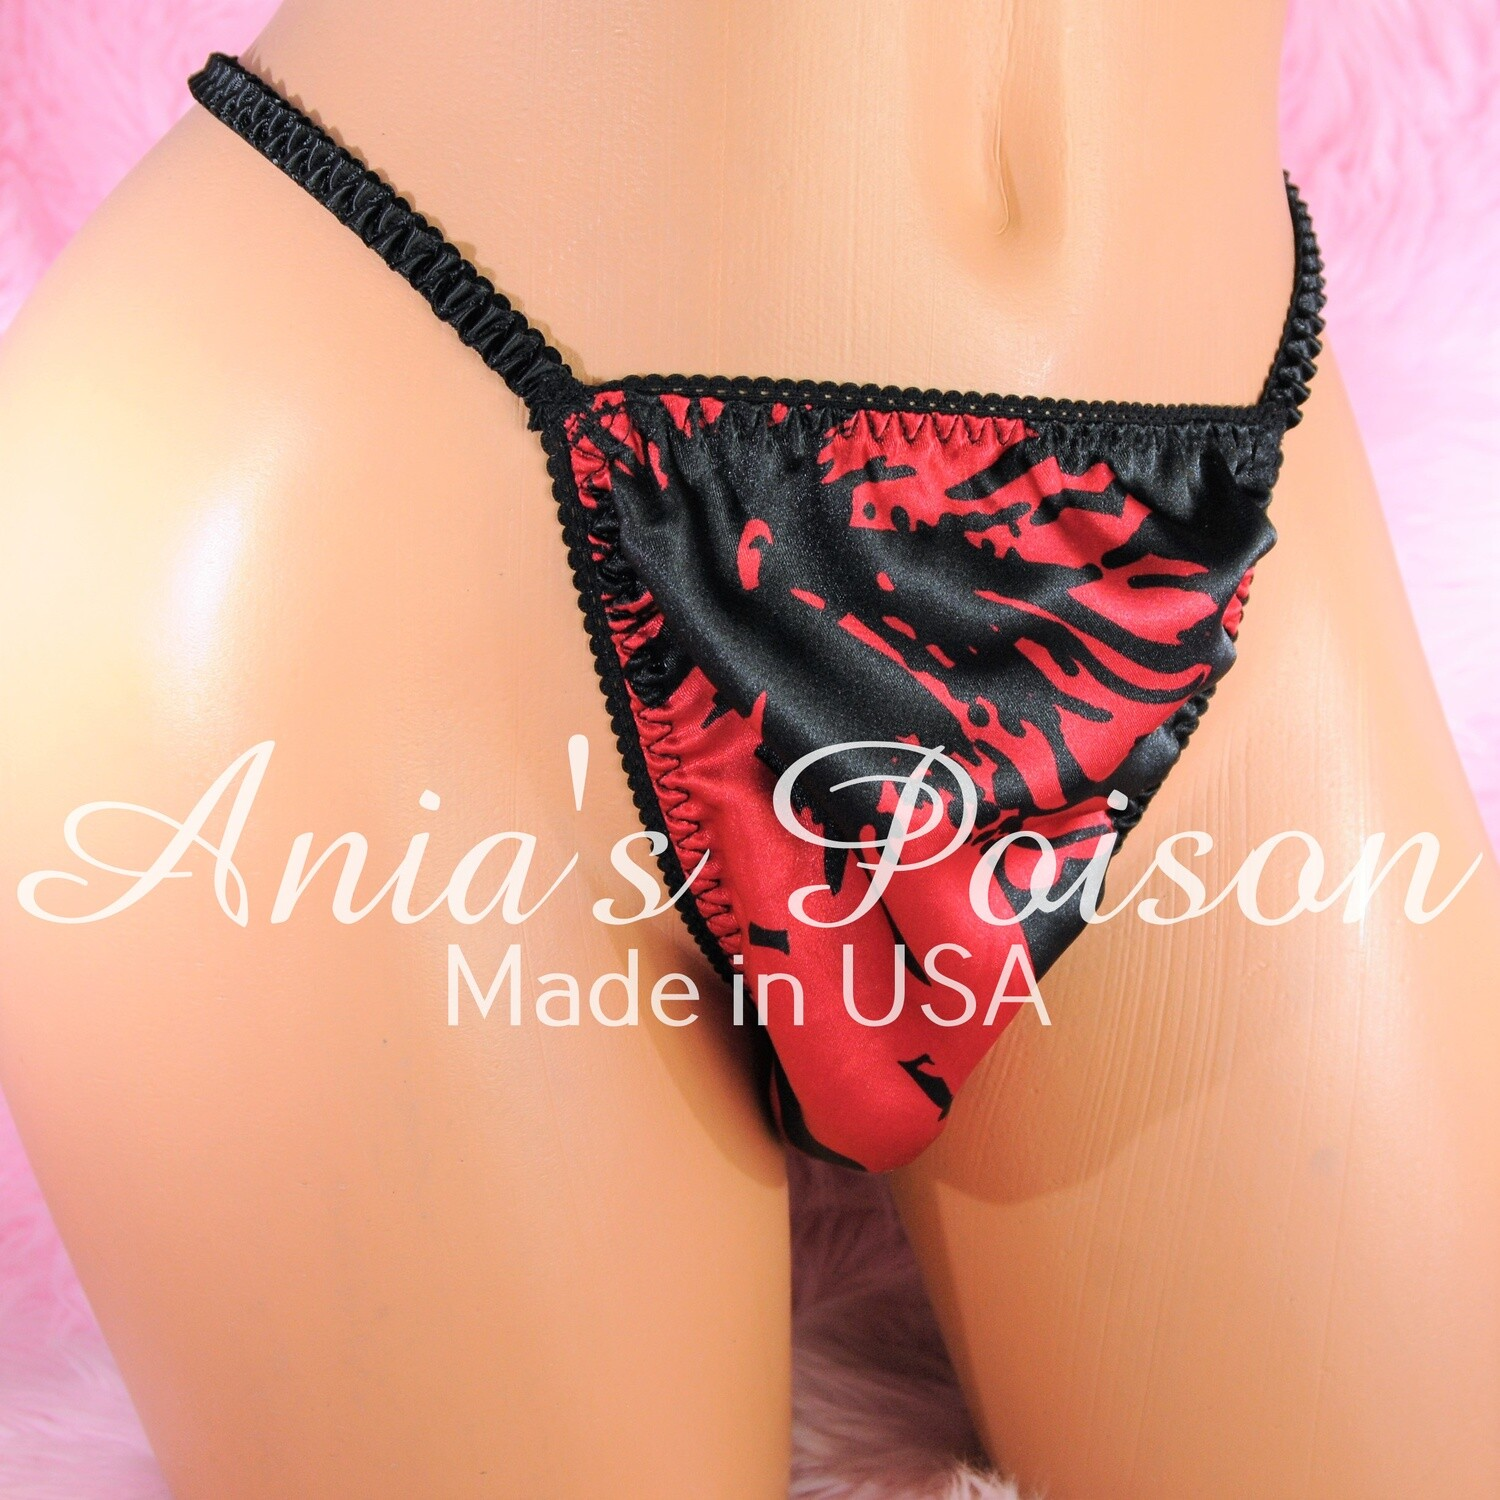 Ultimate Mens satin MANties  little slave sissy pouch string side thong humiliation exotic Floral Black Red panties OS